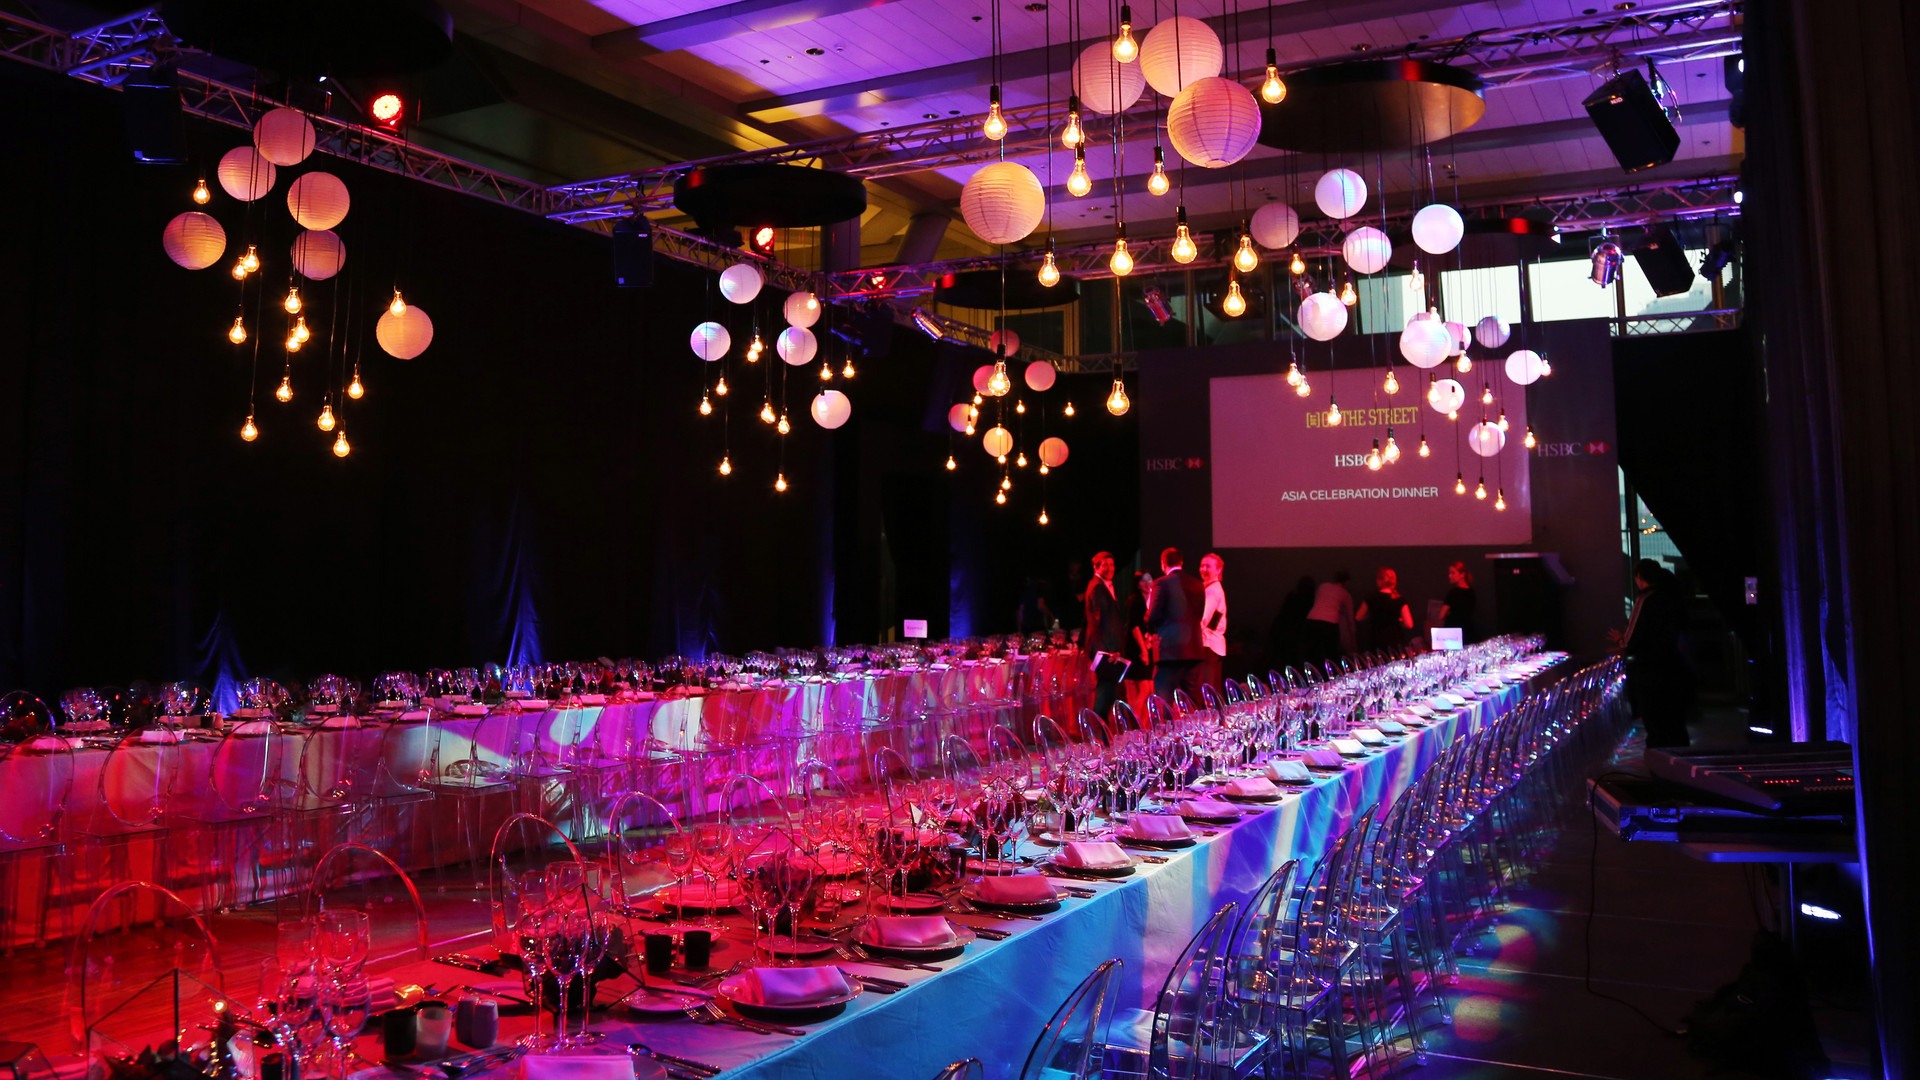 HSBC Asia Celebeation Dinner.JPG